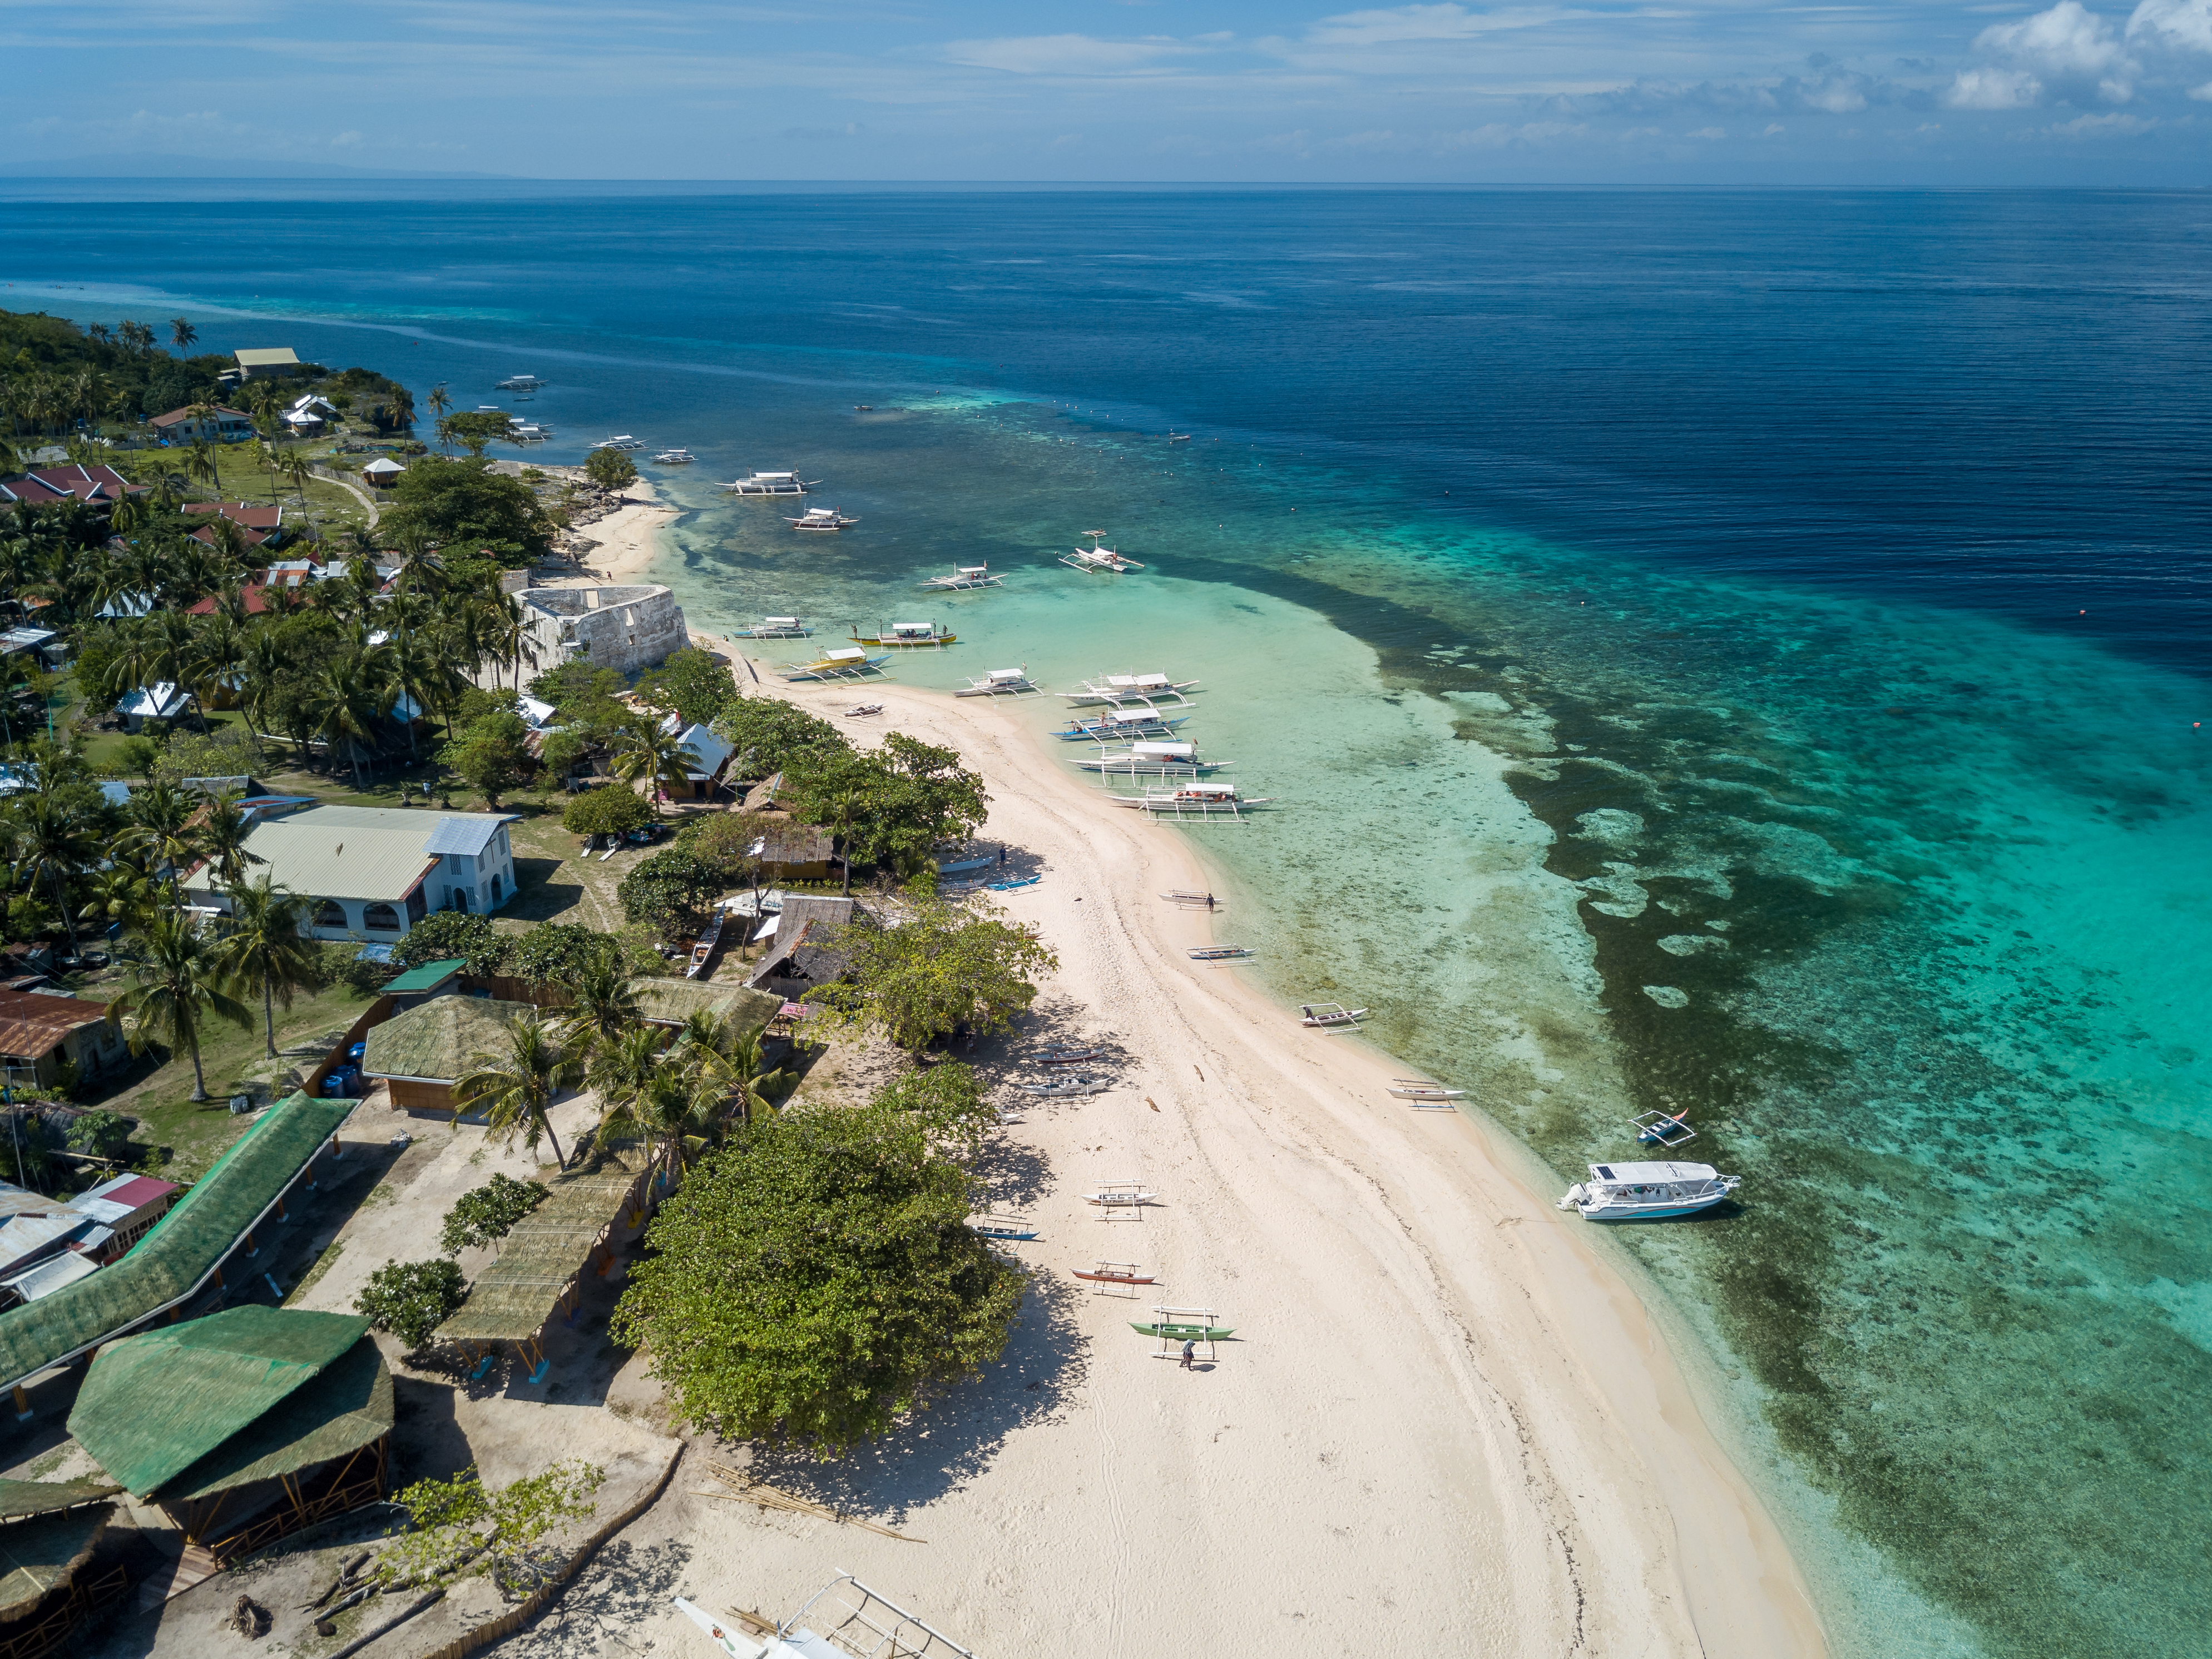 White sand beach and clear blue waters of Pamilacan Island in Bohol